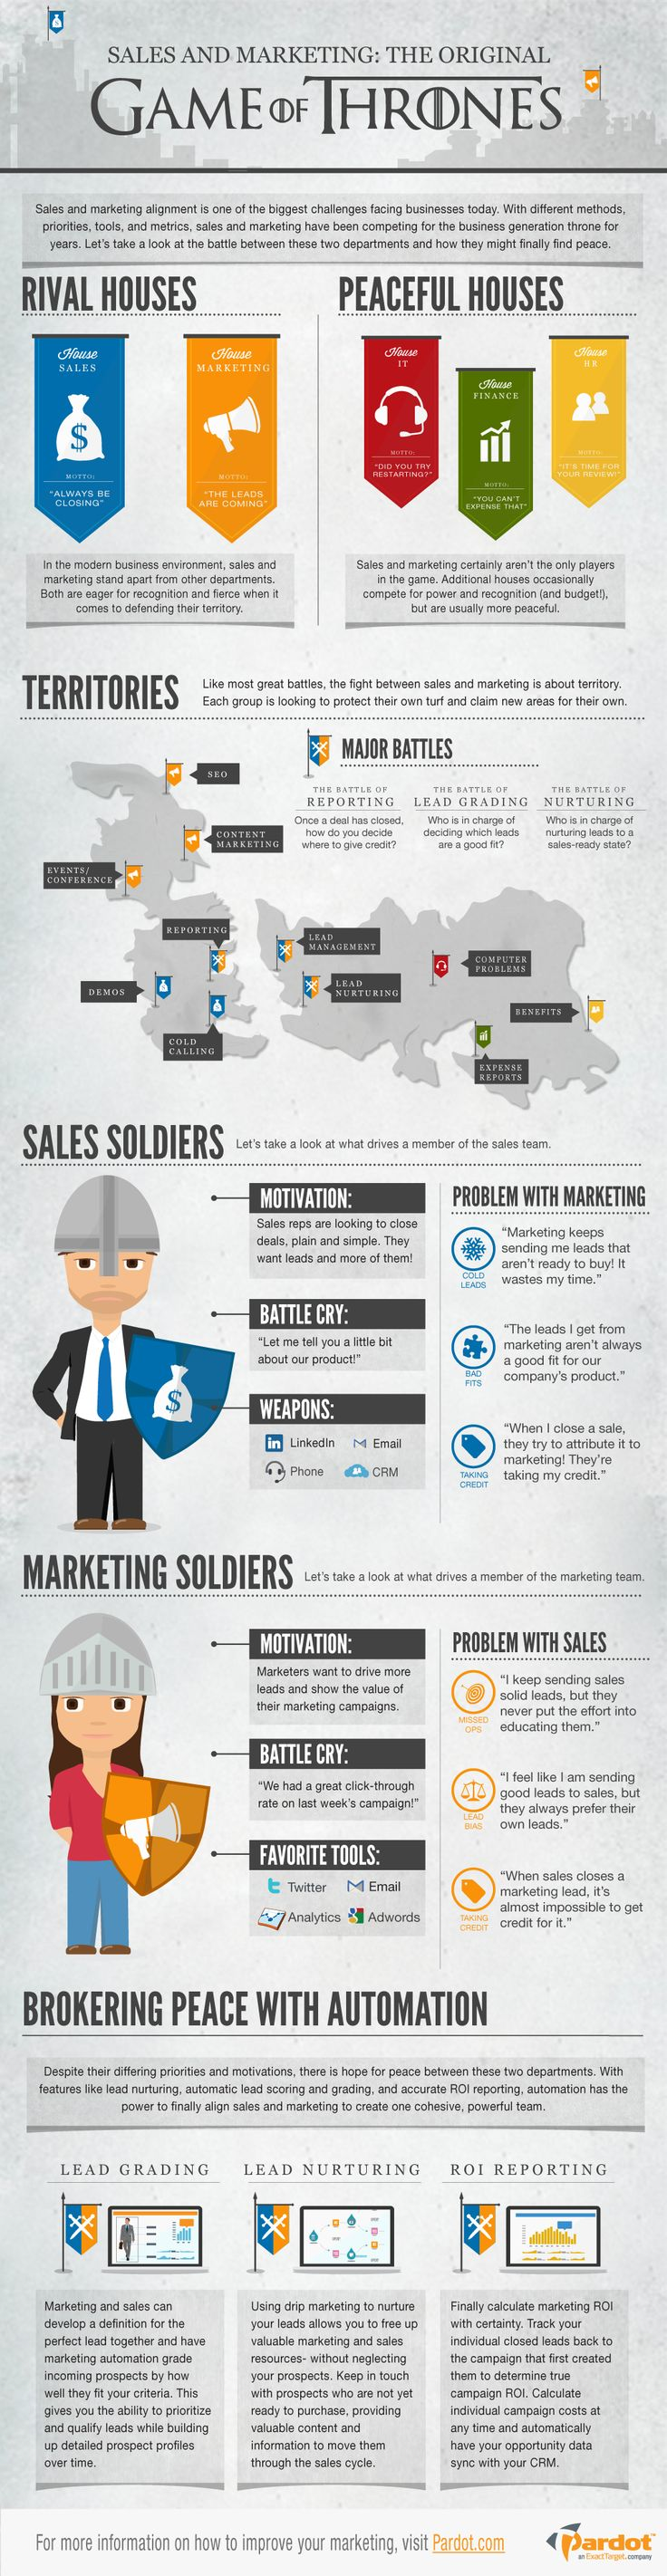 #Sales vs. #Marketing: The Original Game of Thrones #infographic